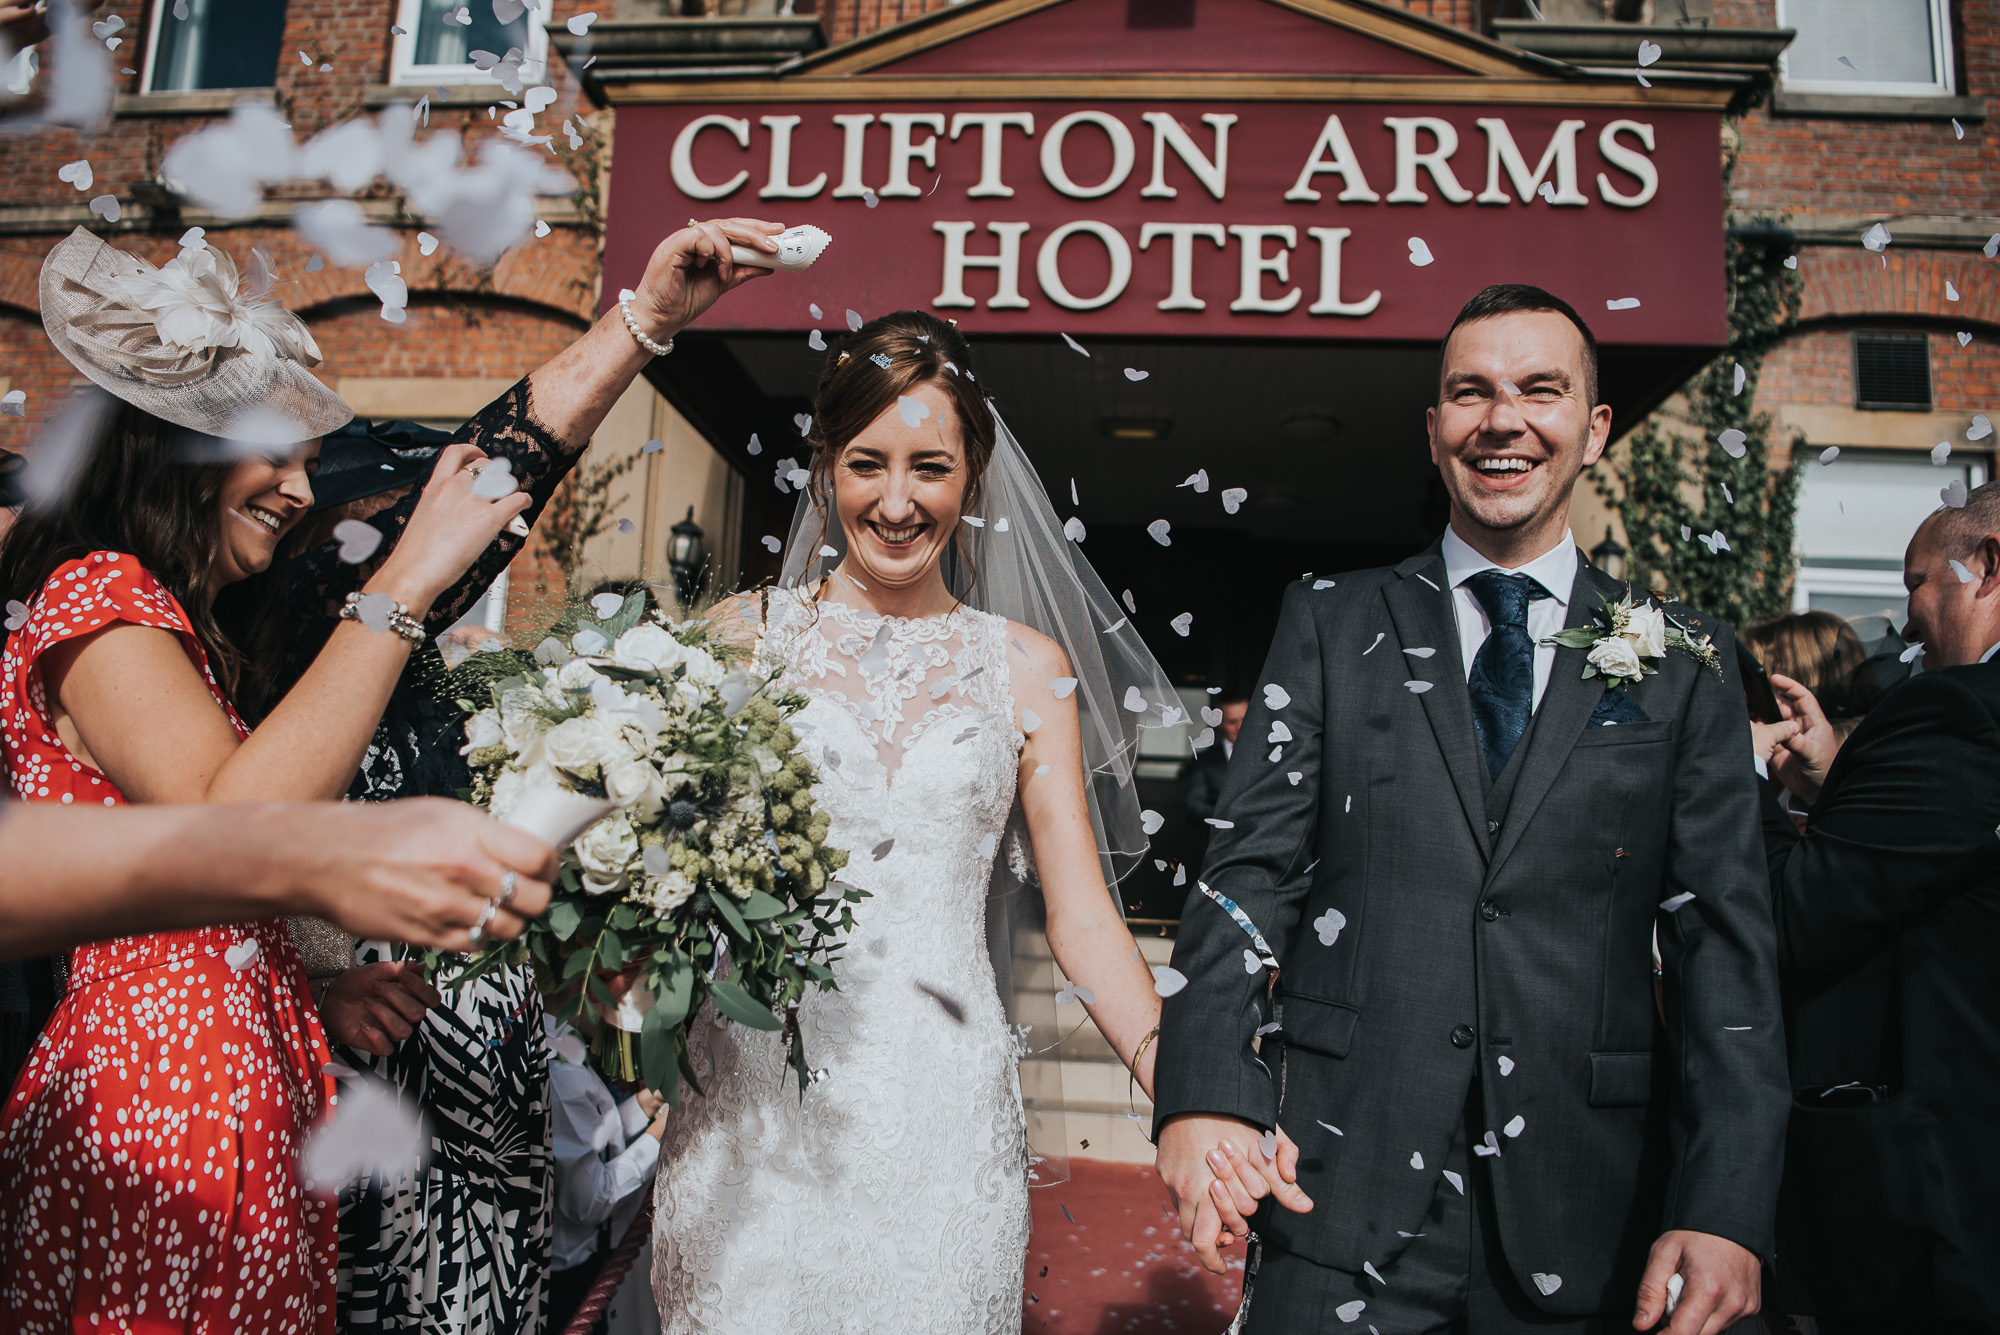 Clifton Arms Hotel Wedding Photography (23 of 40).jpg